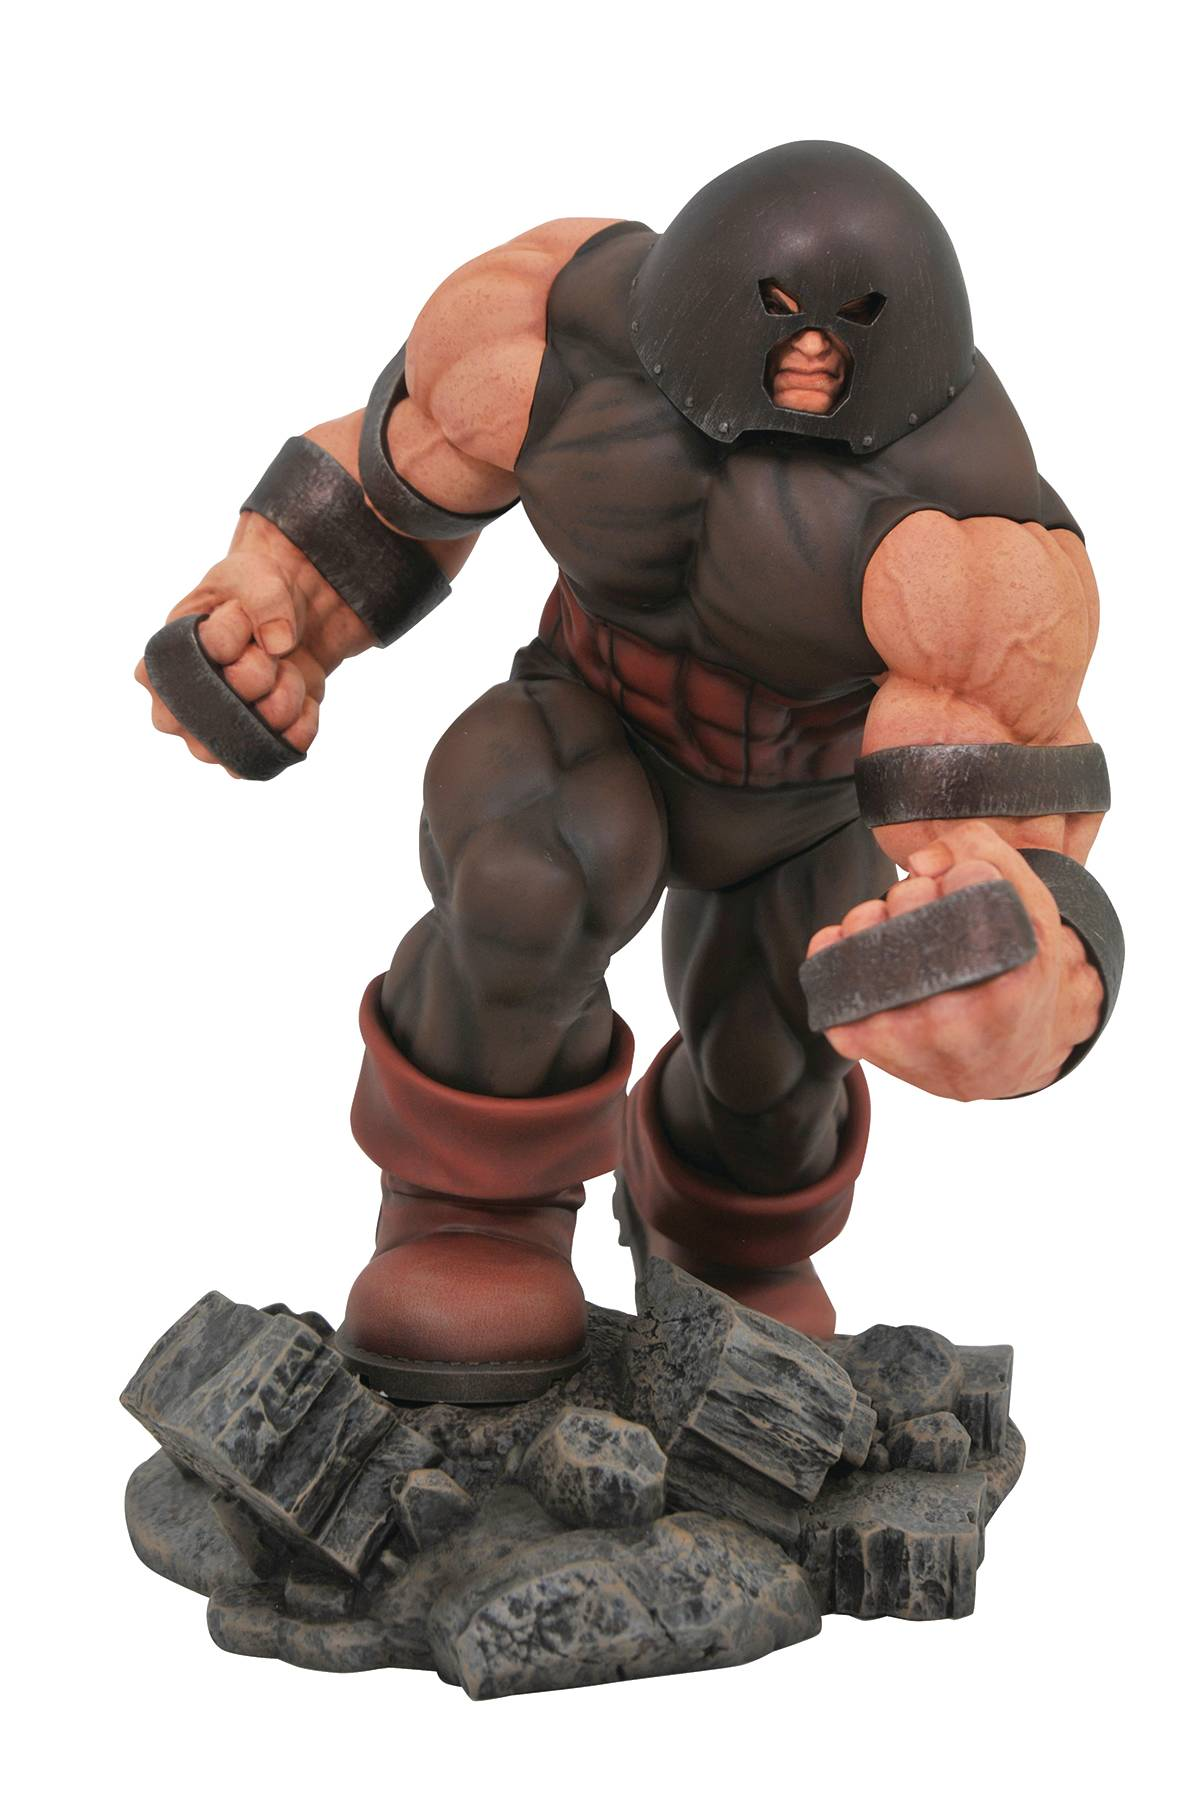 Pre-Order Diamond Marvel Premier Collection Juggernaut Statue